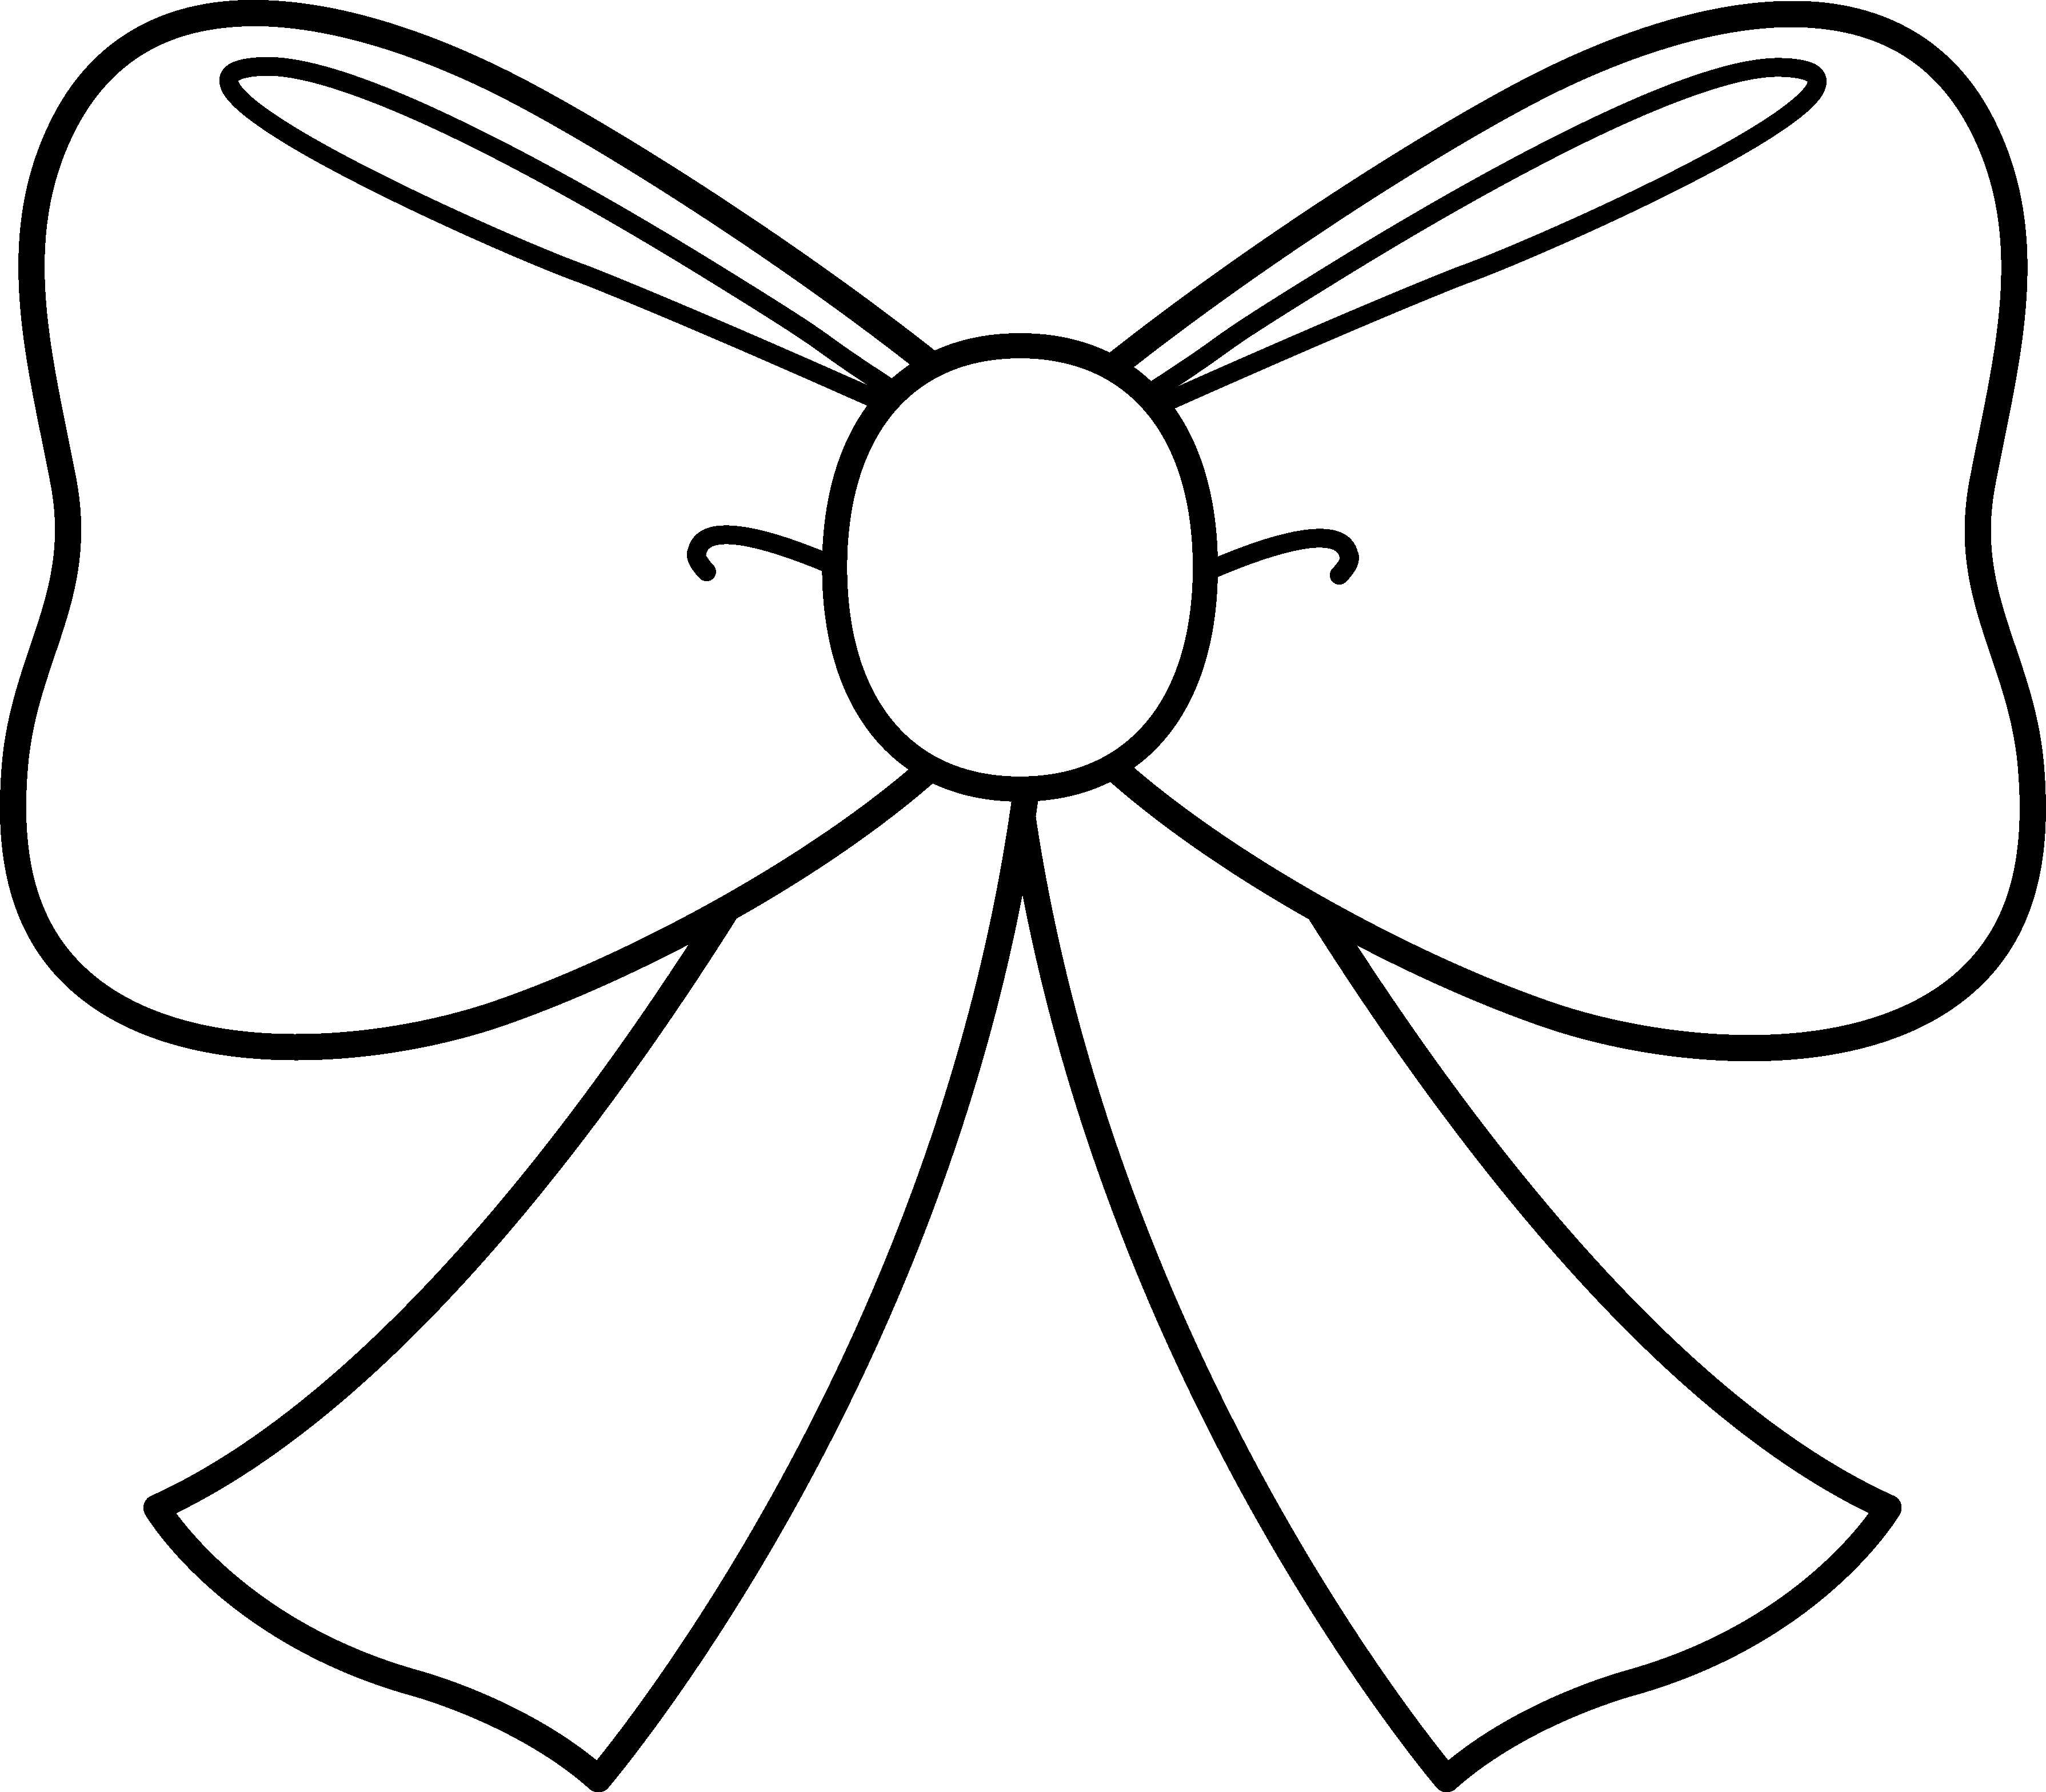 Bows clipart line drawing. Bow free download best